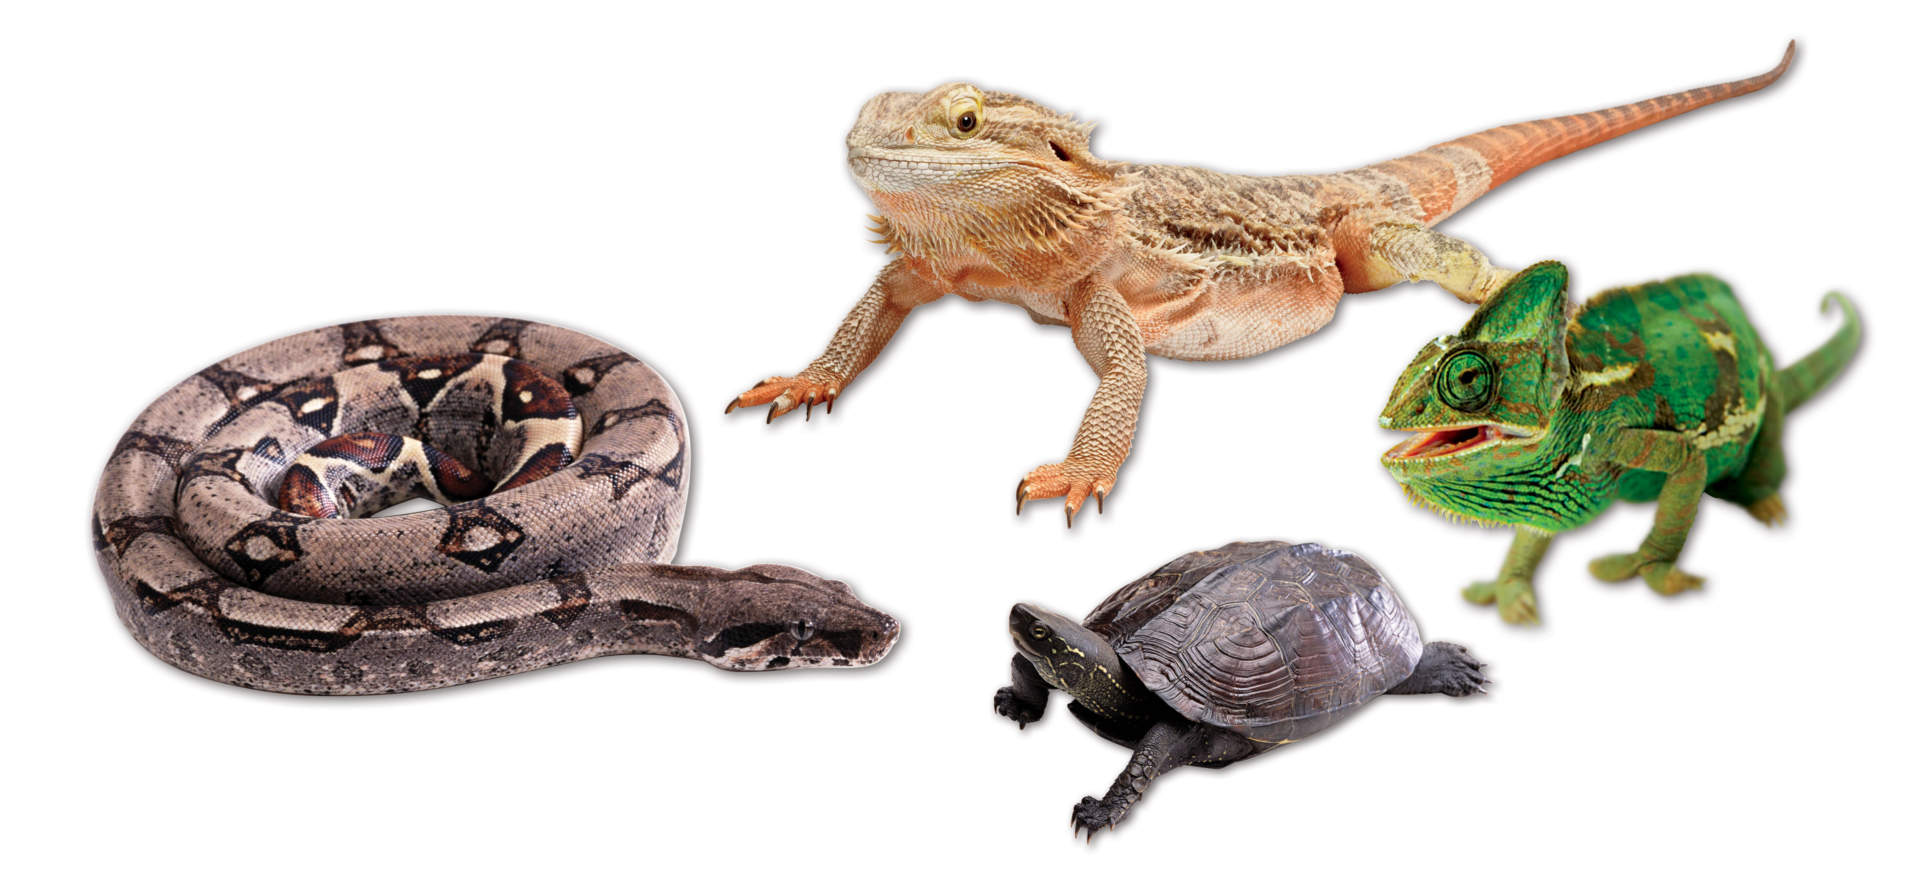 4 reptiles: snake, bearded dragon lizard, turtle and chameleon